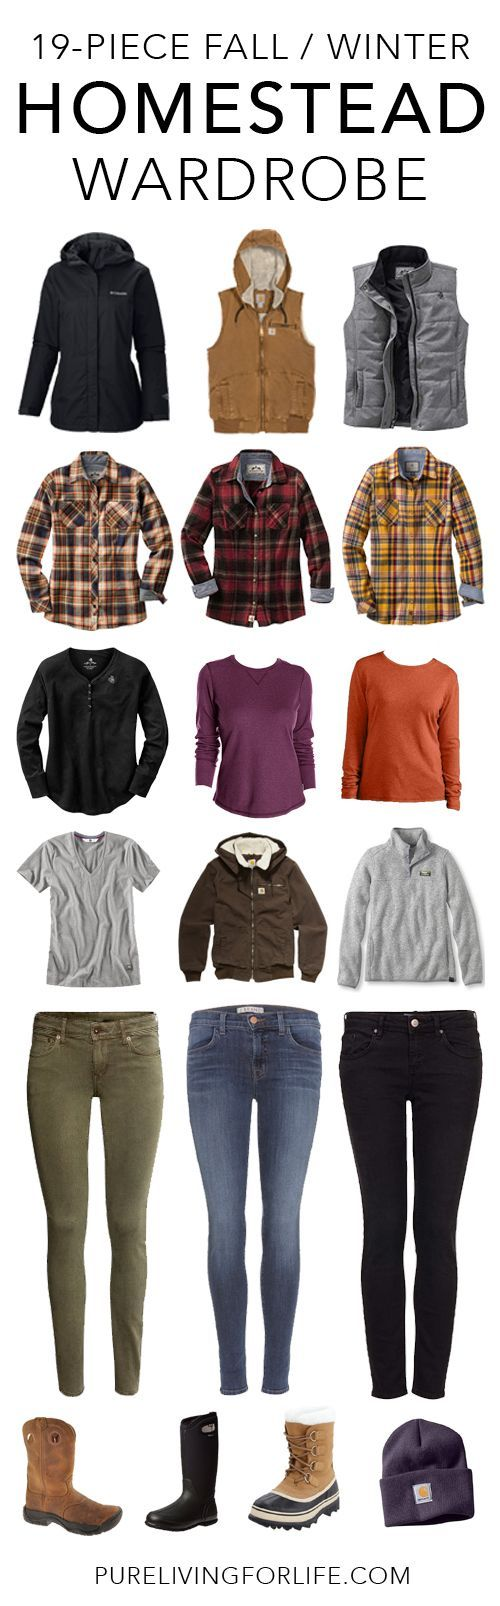 19-Piece Fall / Winter Homestead Wardrobe